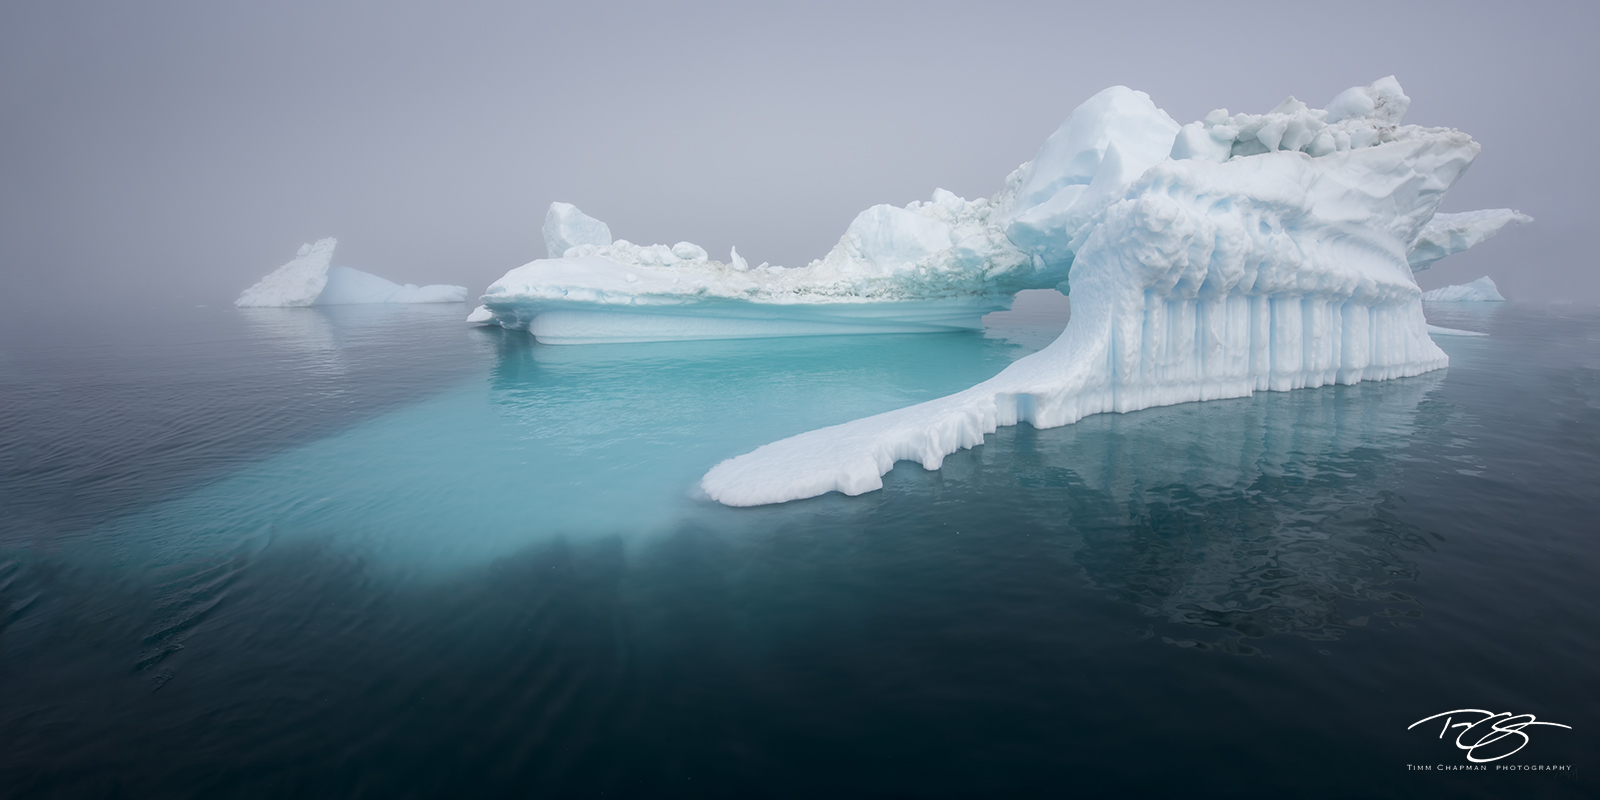 A massive sculpted iceberg appears through the thick fog cloaking Disko Bay